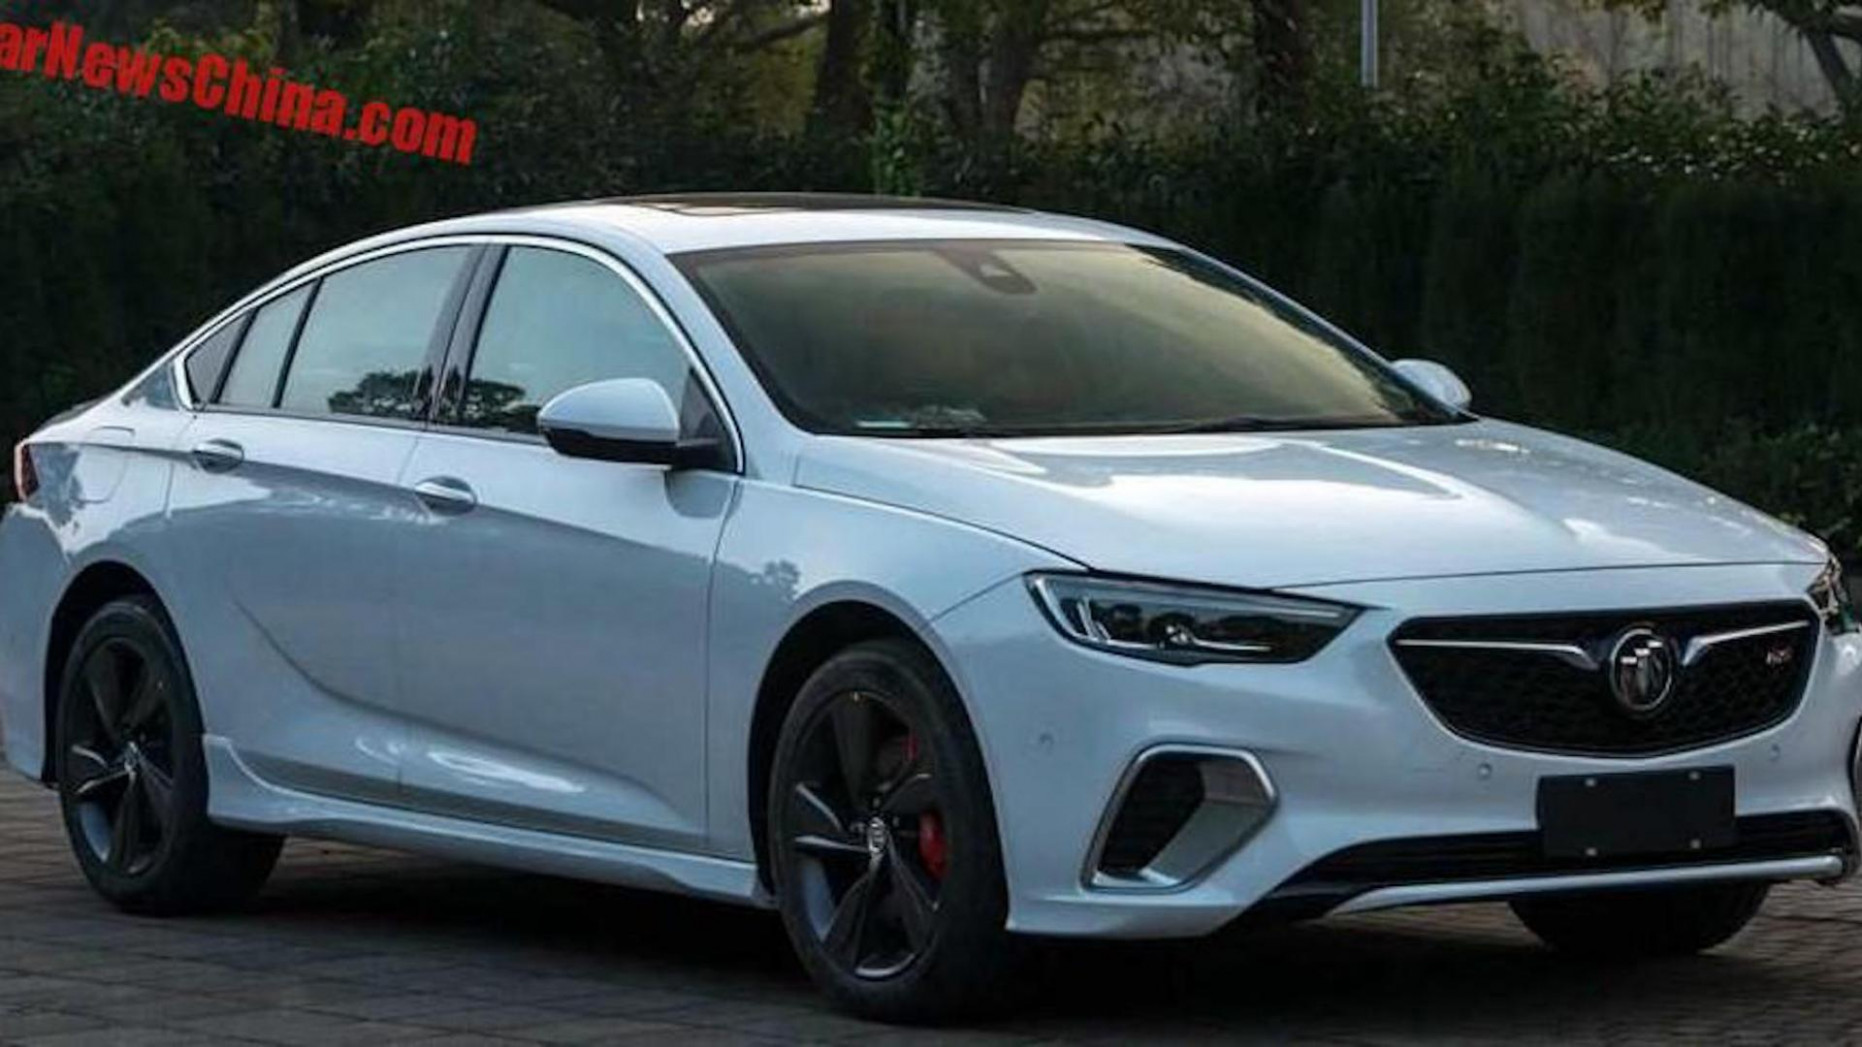 Redesign and Concept 2022 Buick Regal Gs Coupe